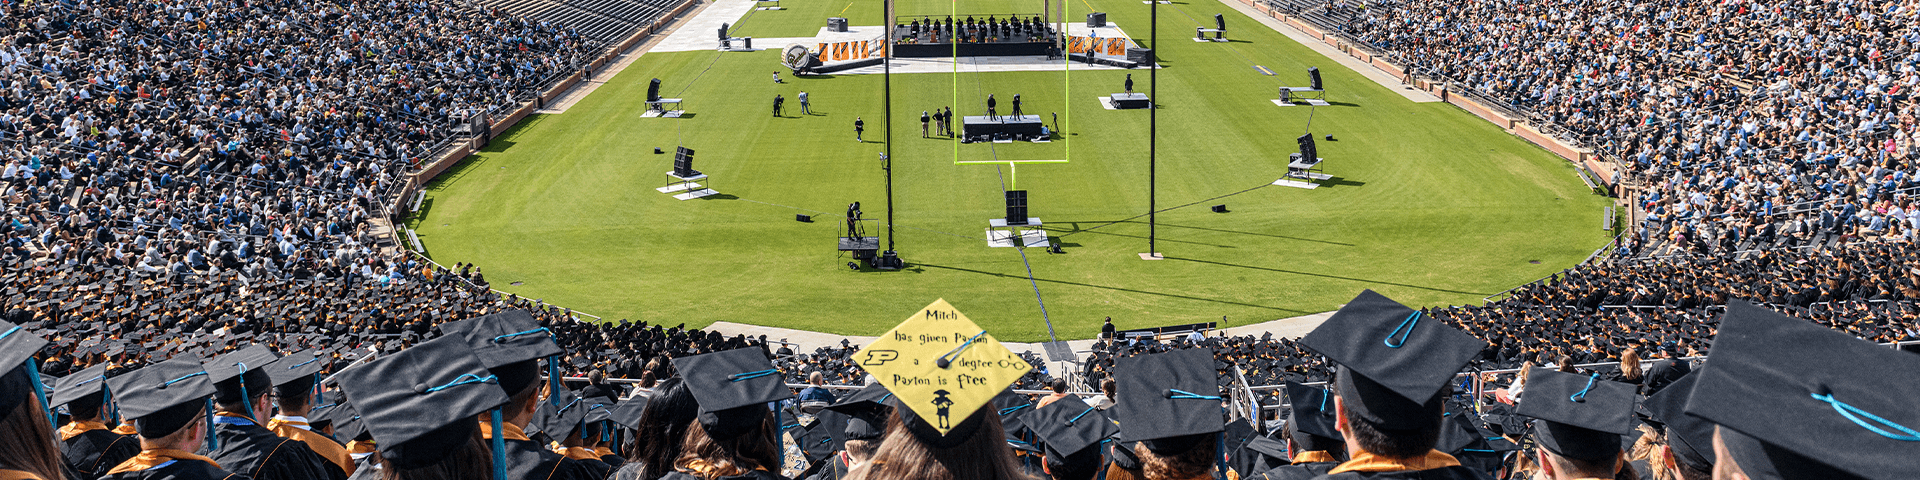 Commencement picture